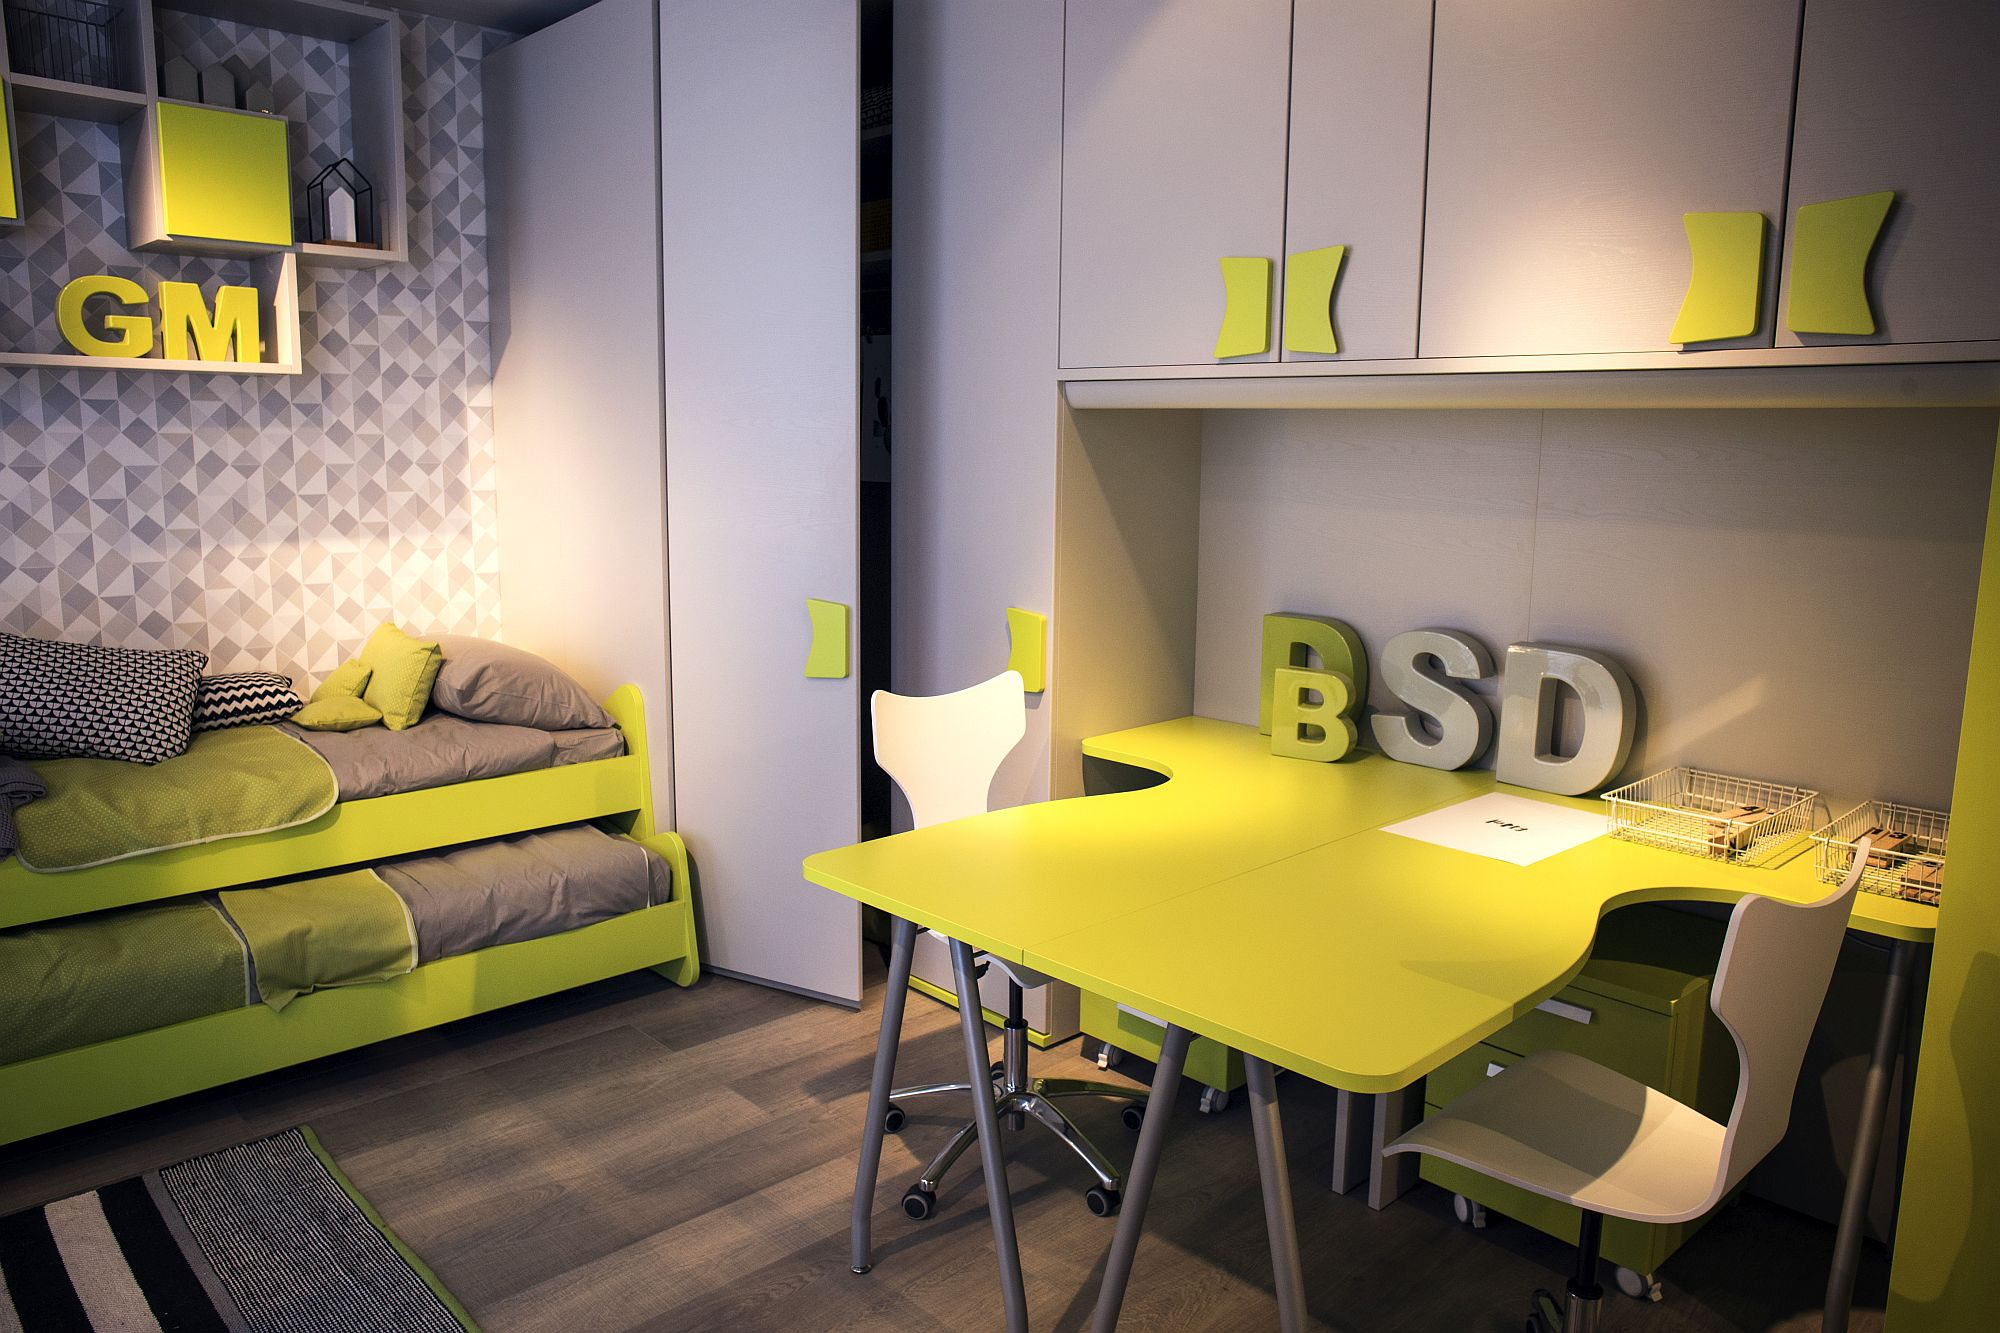 Smart-twin-workstation-idea-for-the-shared-kids-room